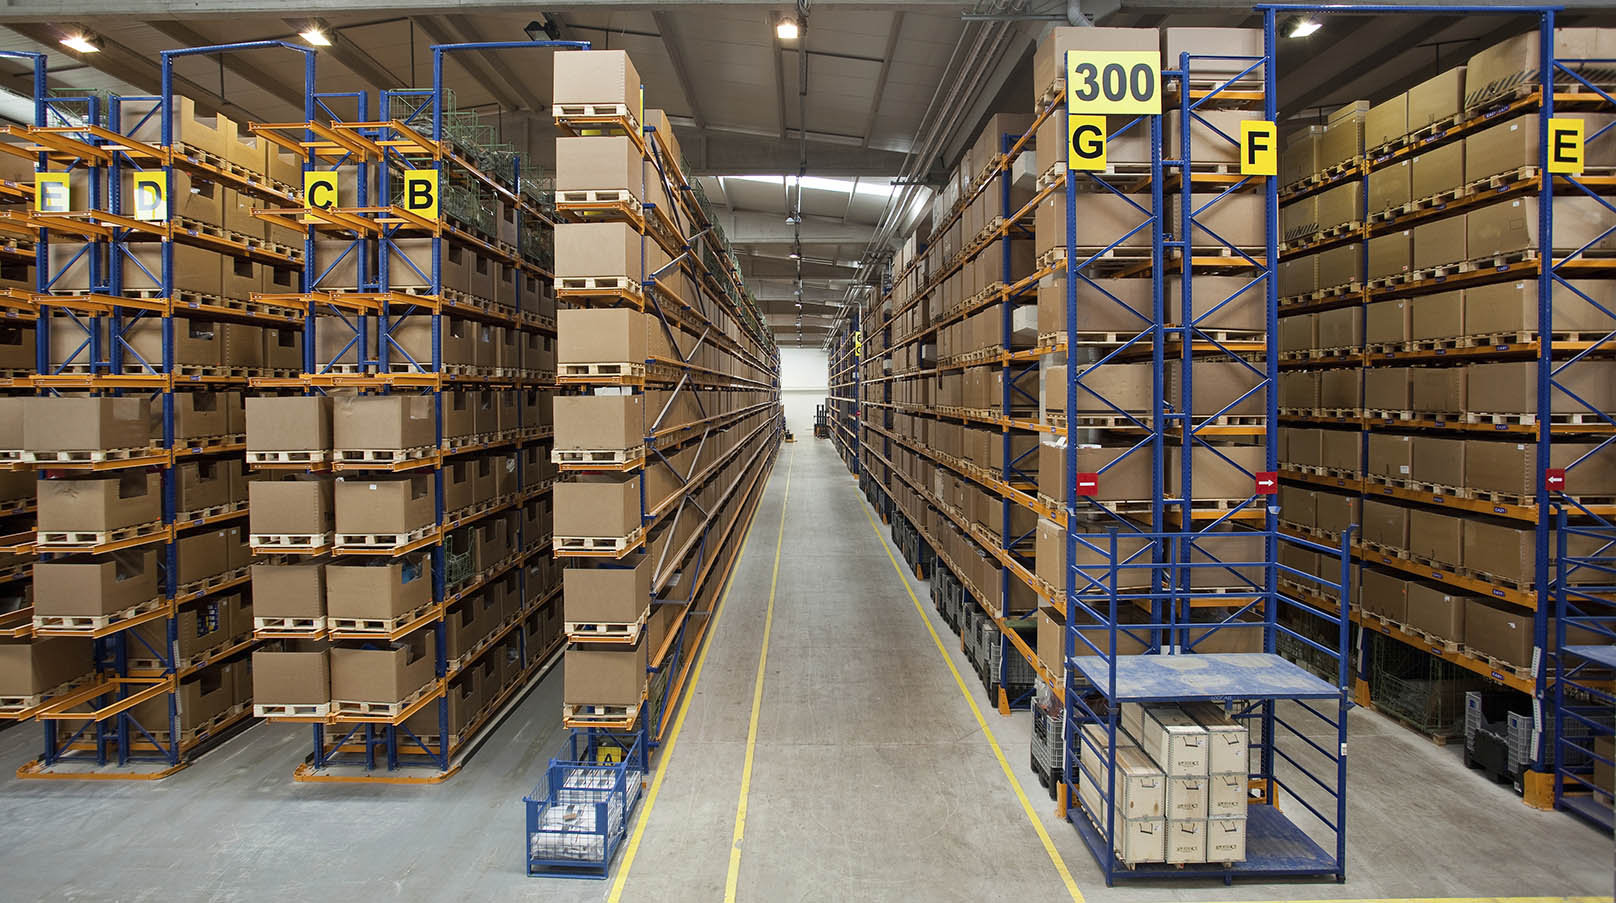 How to Prevent Pallet Rack Damage With 10 Simple Safety Tips